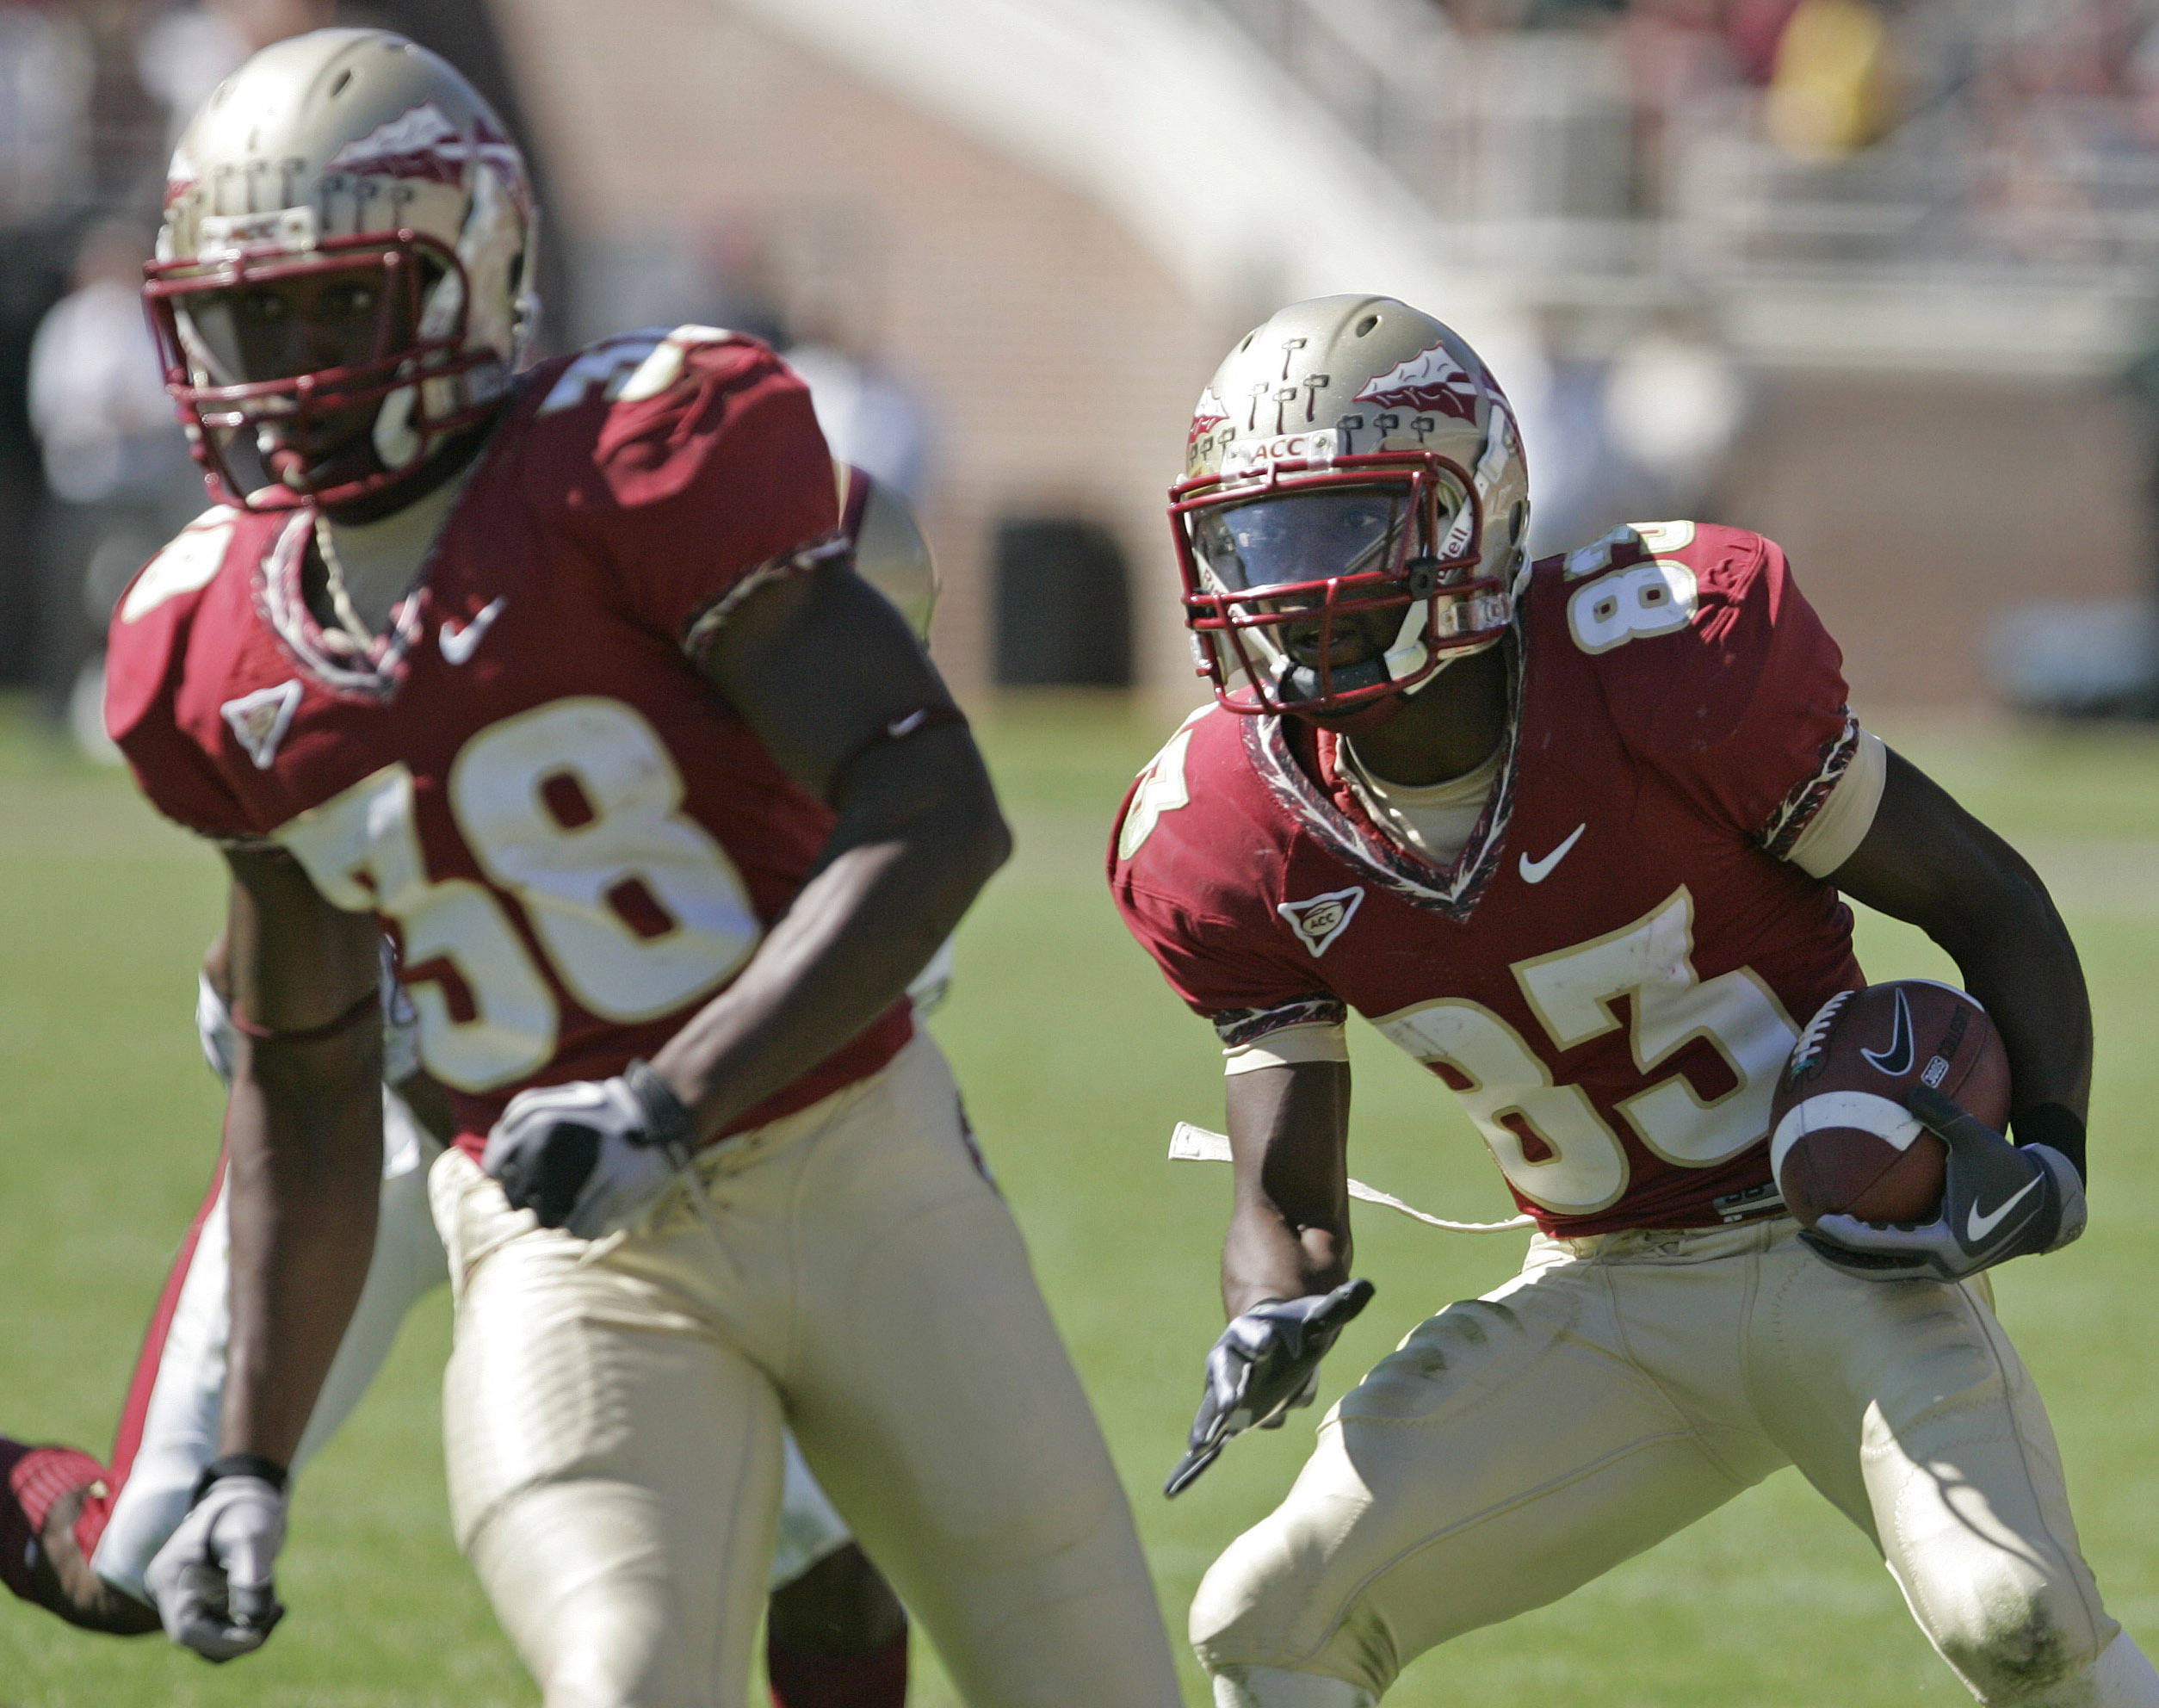 Florida State's Burt Reed, right, follows the block of Jermaine Thomas on his way to the game-winning touchdown on Saturday. (AP Photo/Steve Cannon)